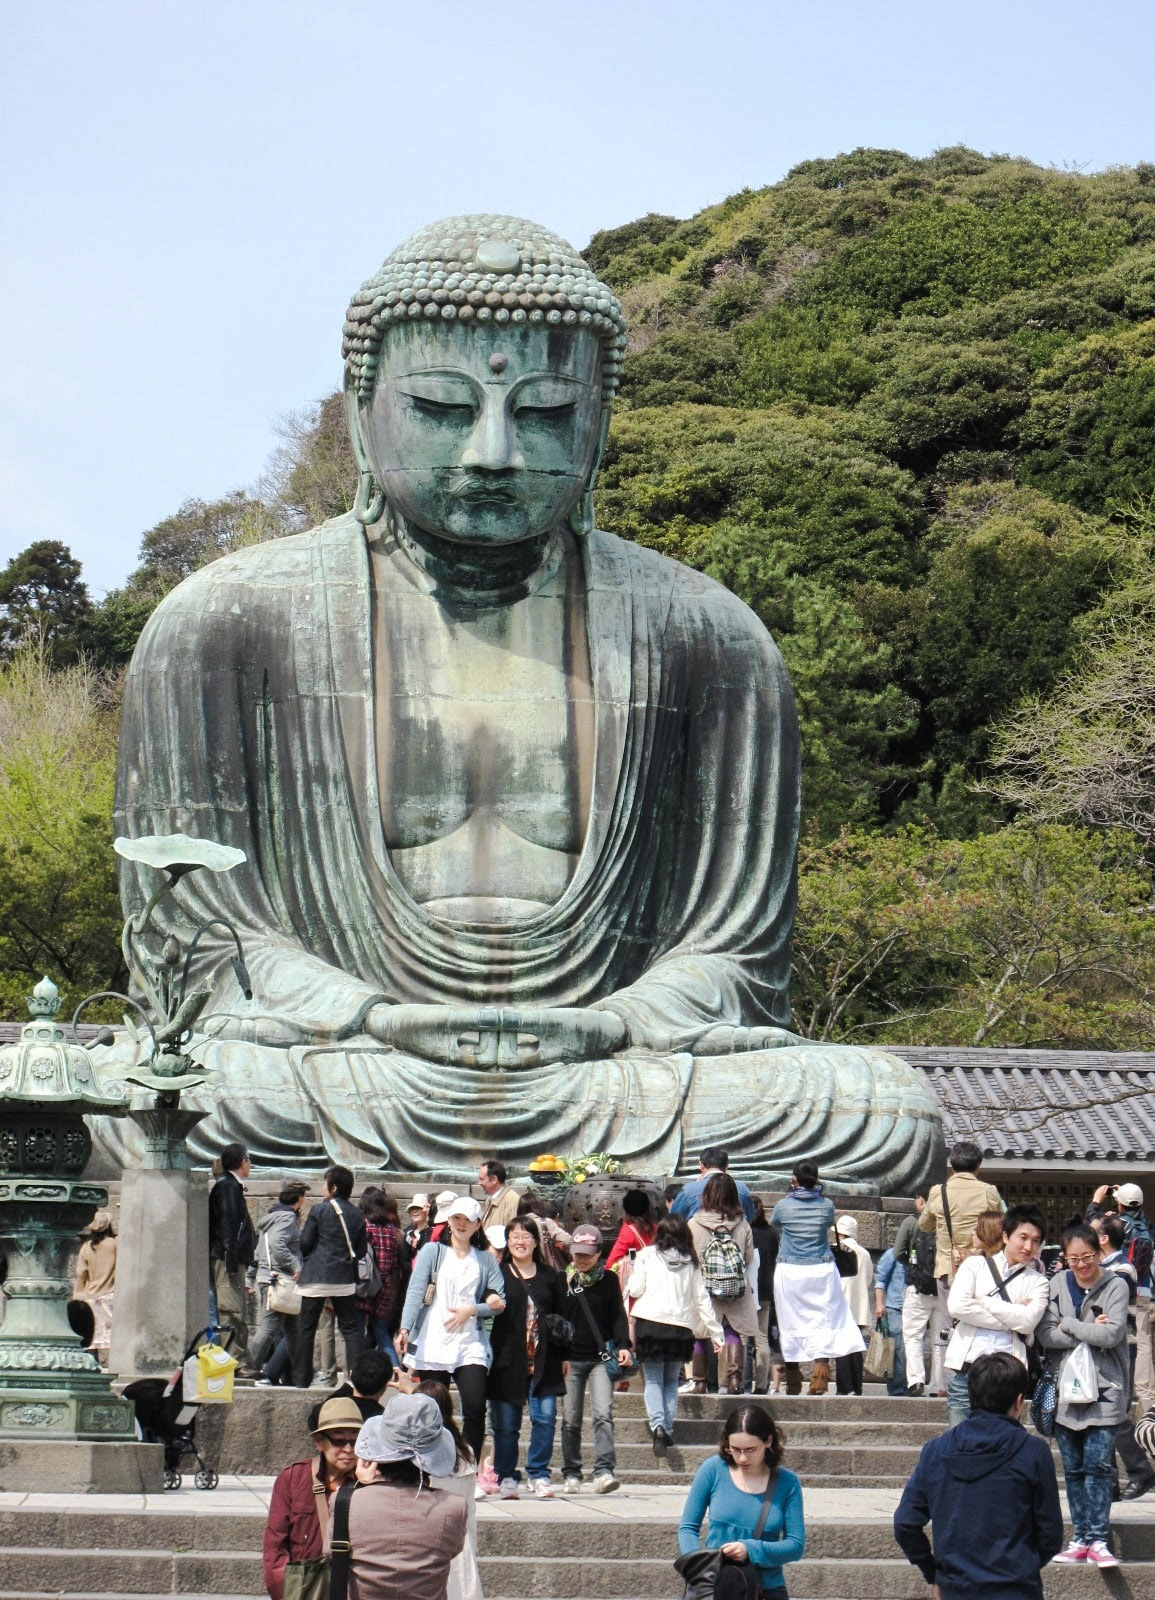 The Giant Buddha of Kamakura by Jeanette Richmond